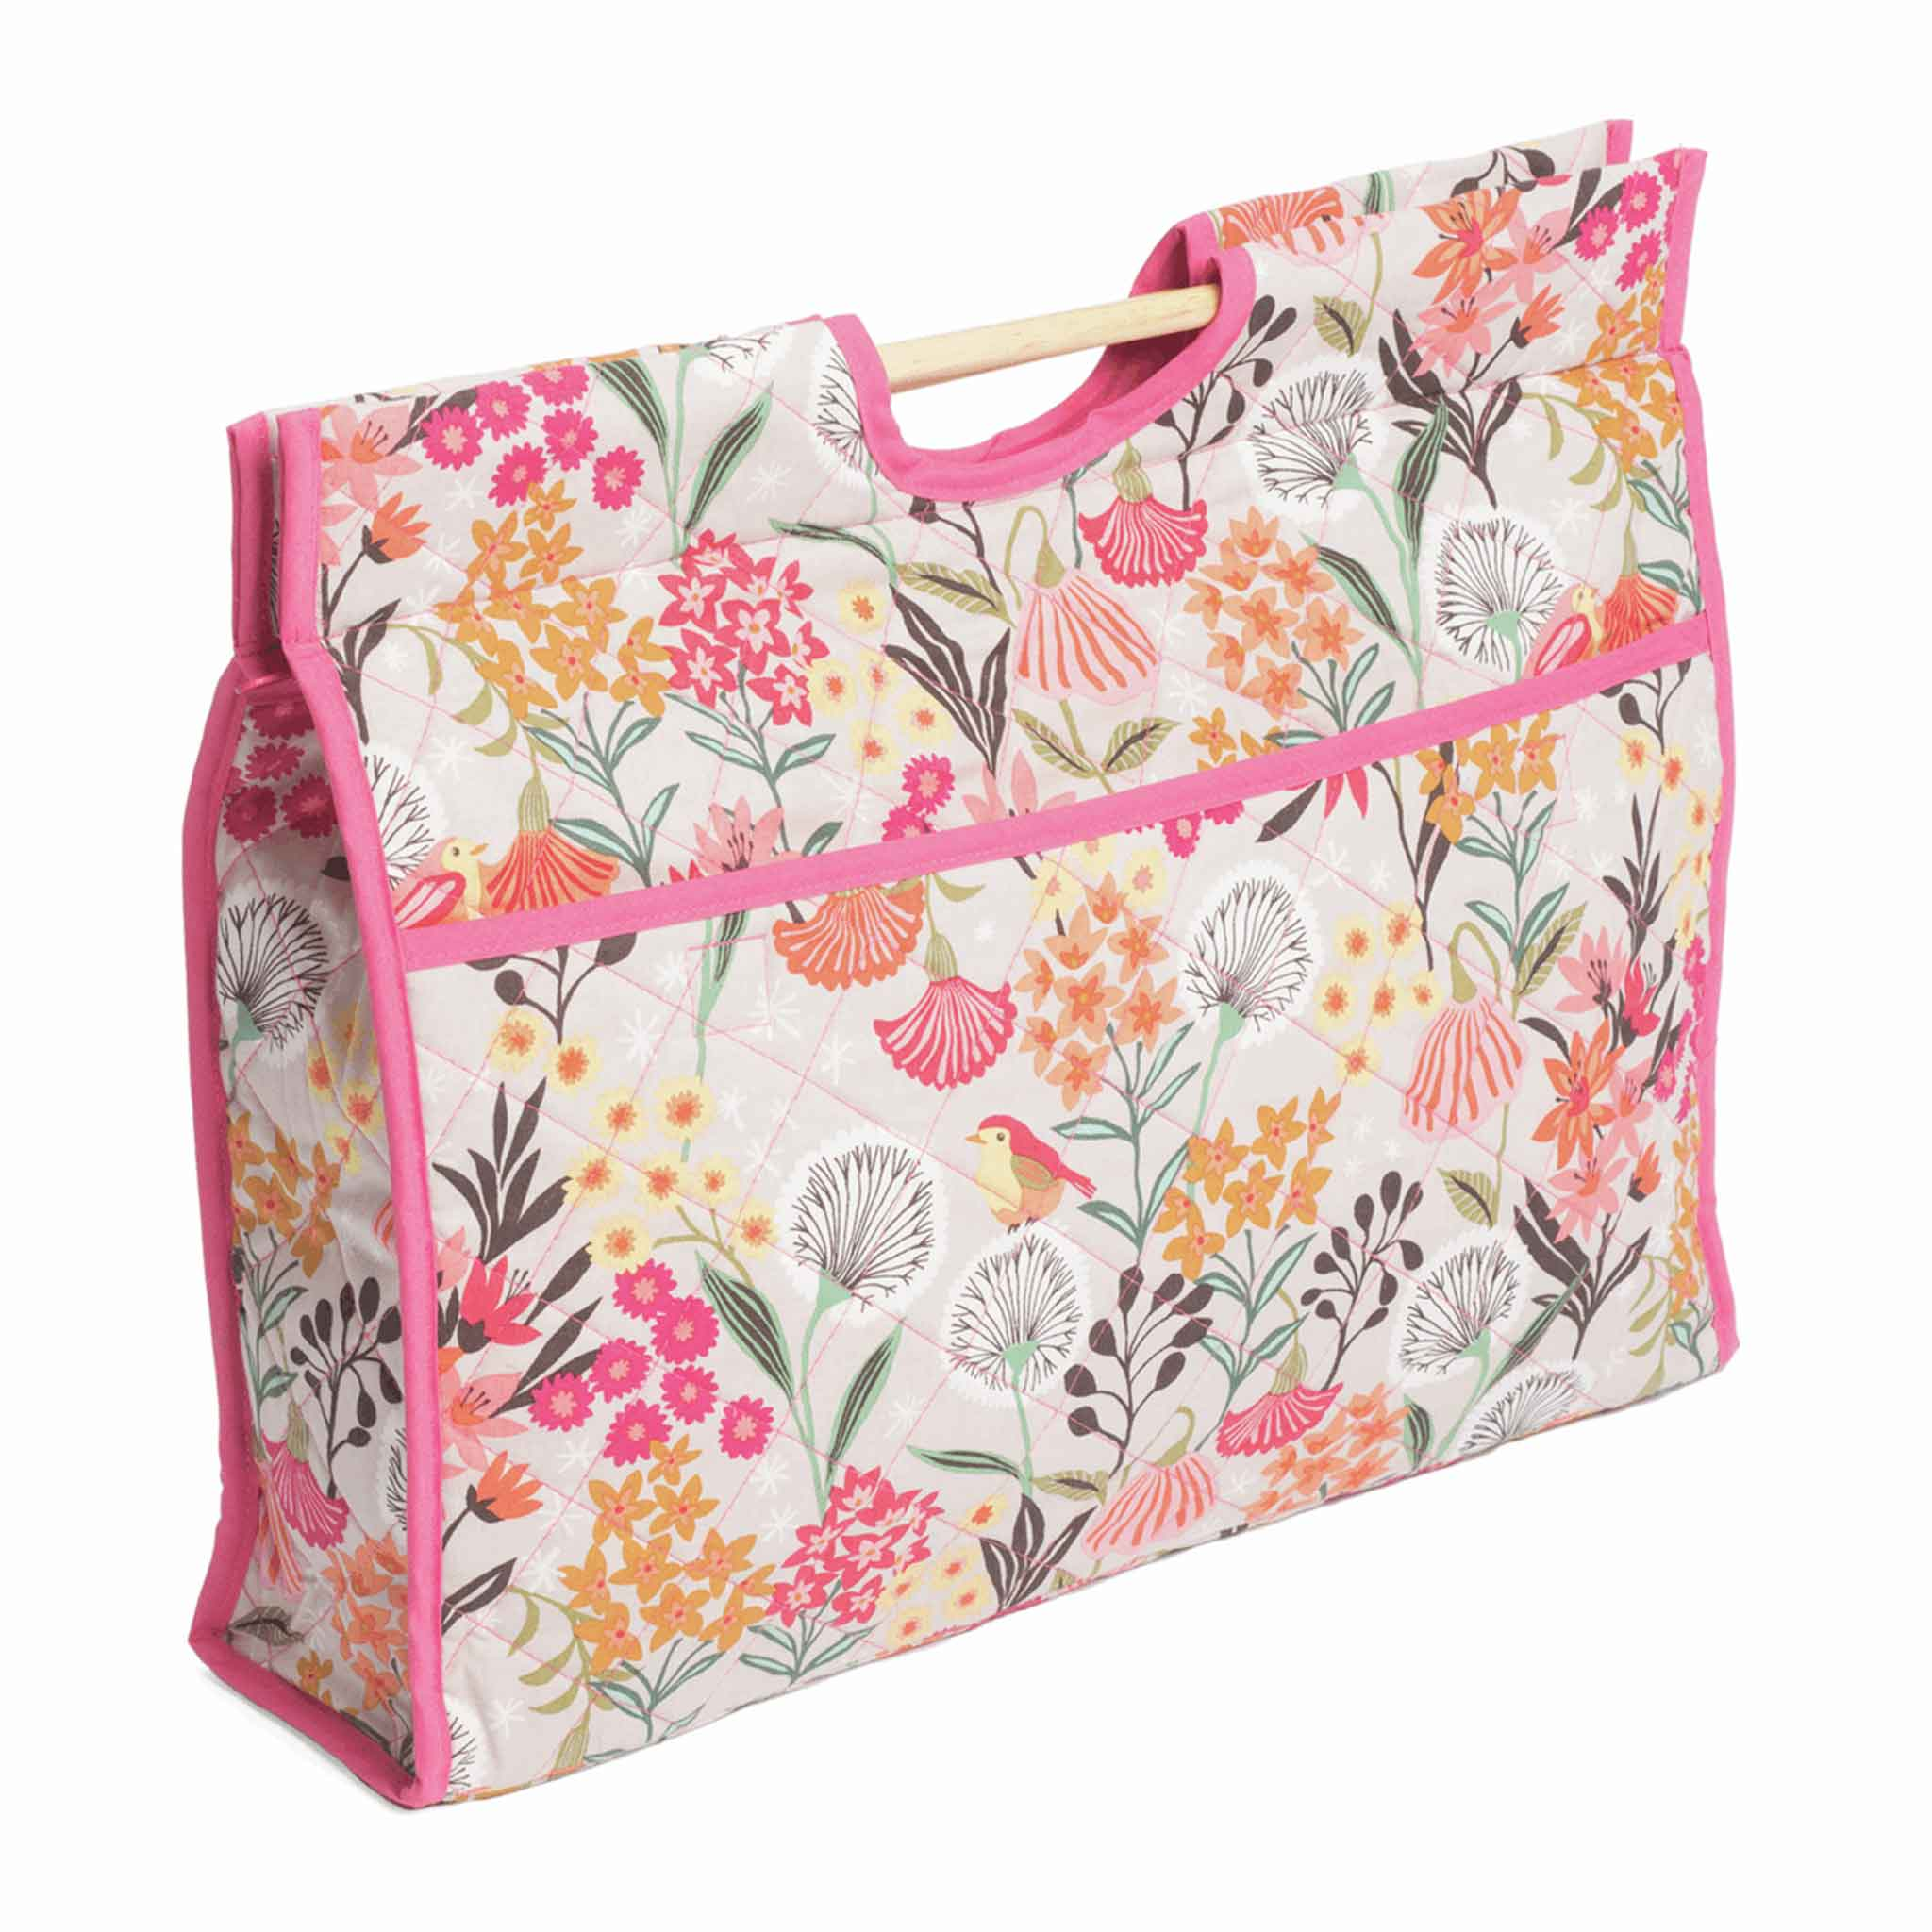 Dandelion Garden Craft Bag with Wooden Handles: Pink Flowers Storage Bag, Hobby Gift  HGCB\233